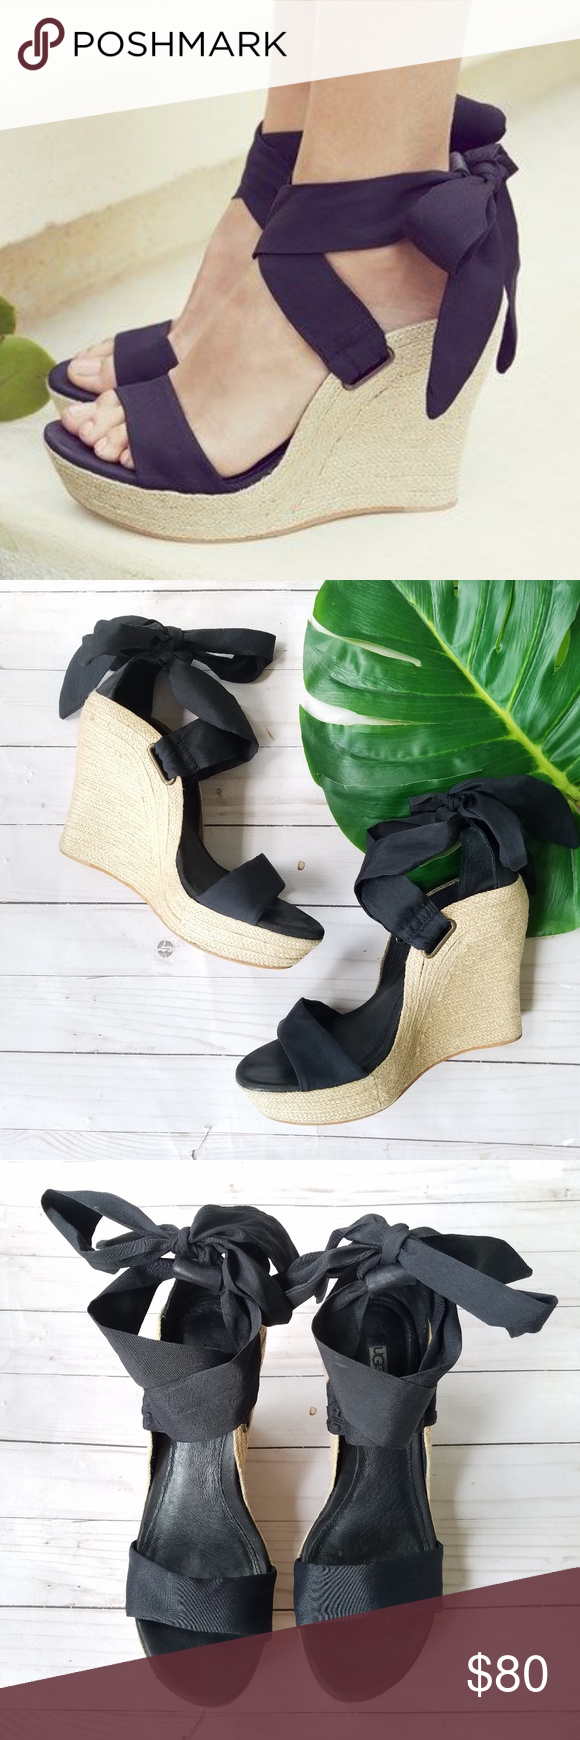 6aace6699710 Ankle Straps · Black Sandals · Espadrilles · Ugg Shoes · Ribbon · Ugg Jules  Espadrille Wedges Ugg. Women s 7.5. Jules Platform Wedge Sandals. Color